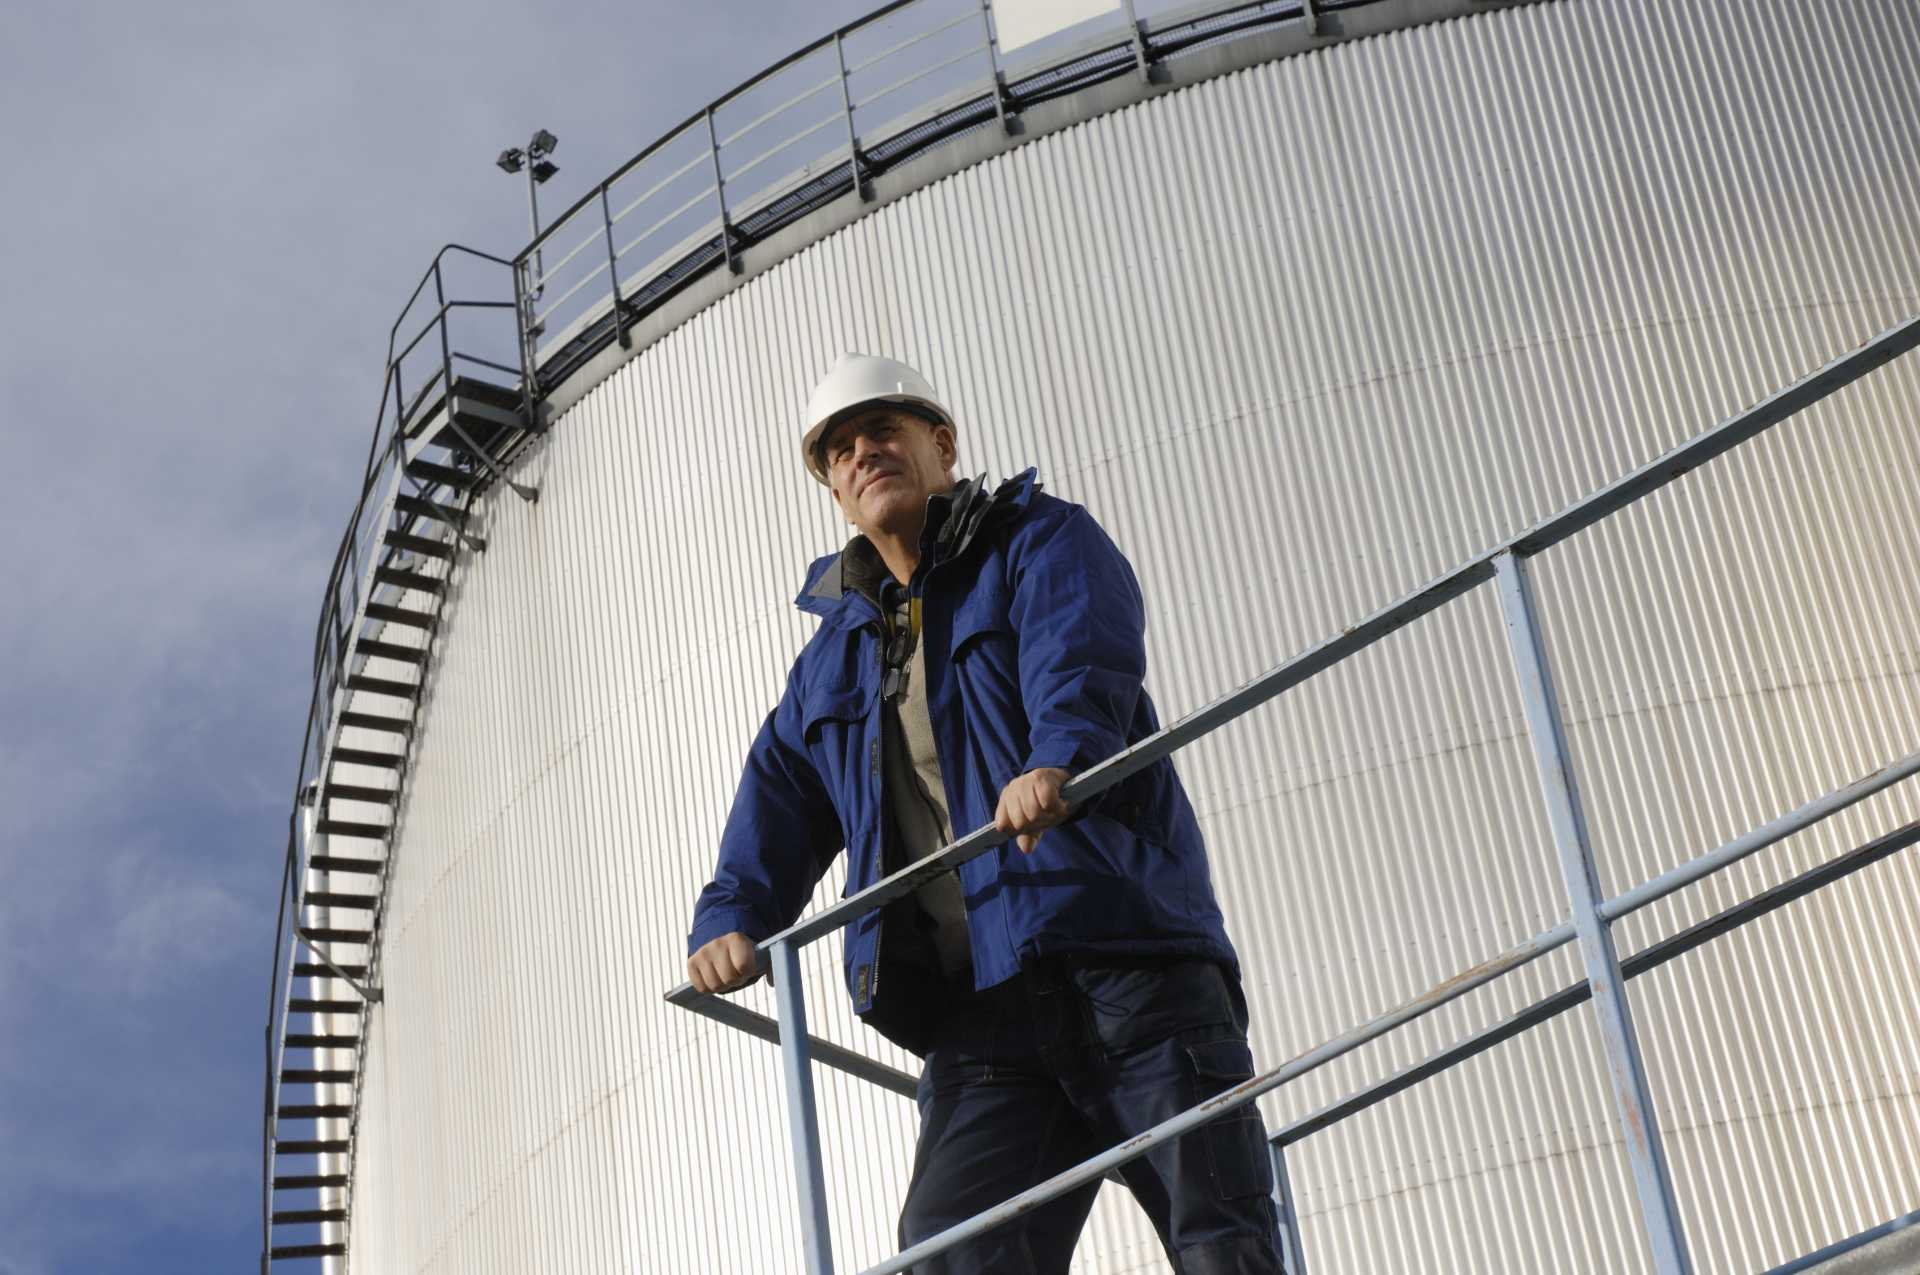 Guy standing on a platform near a storage tank